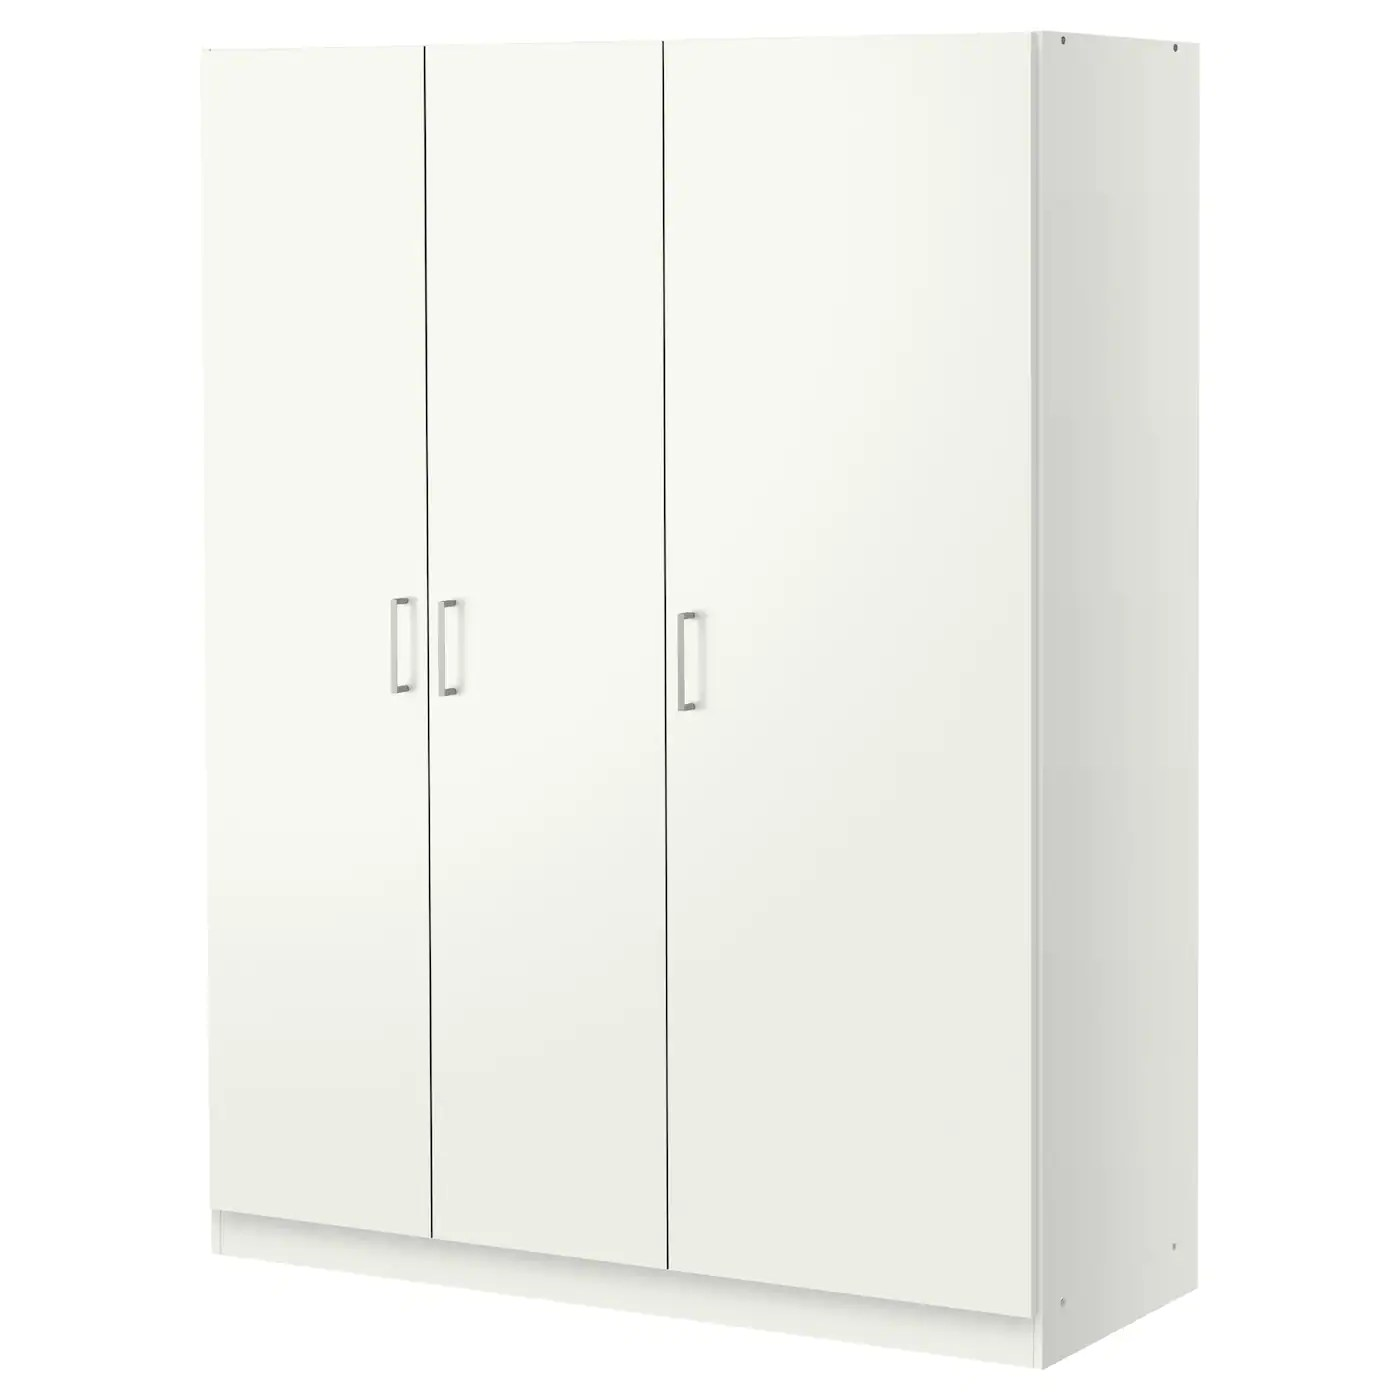 Ikea Armoire Malm Malm Chest Of 4 Drawers White 80x100 Cm Ikea